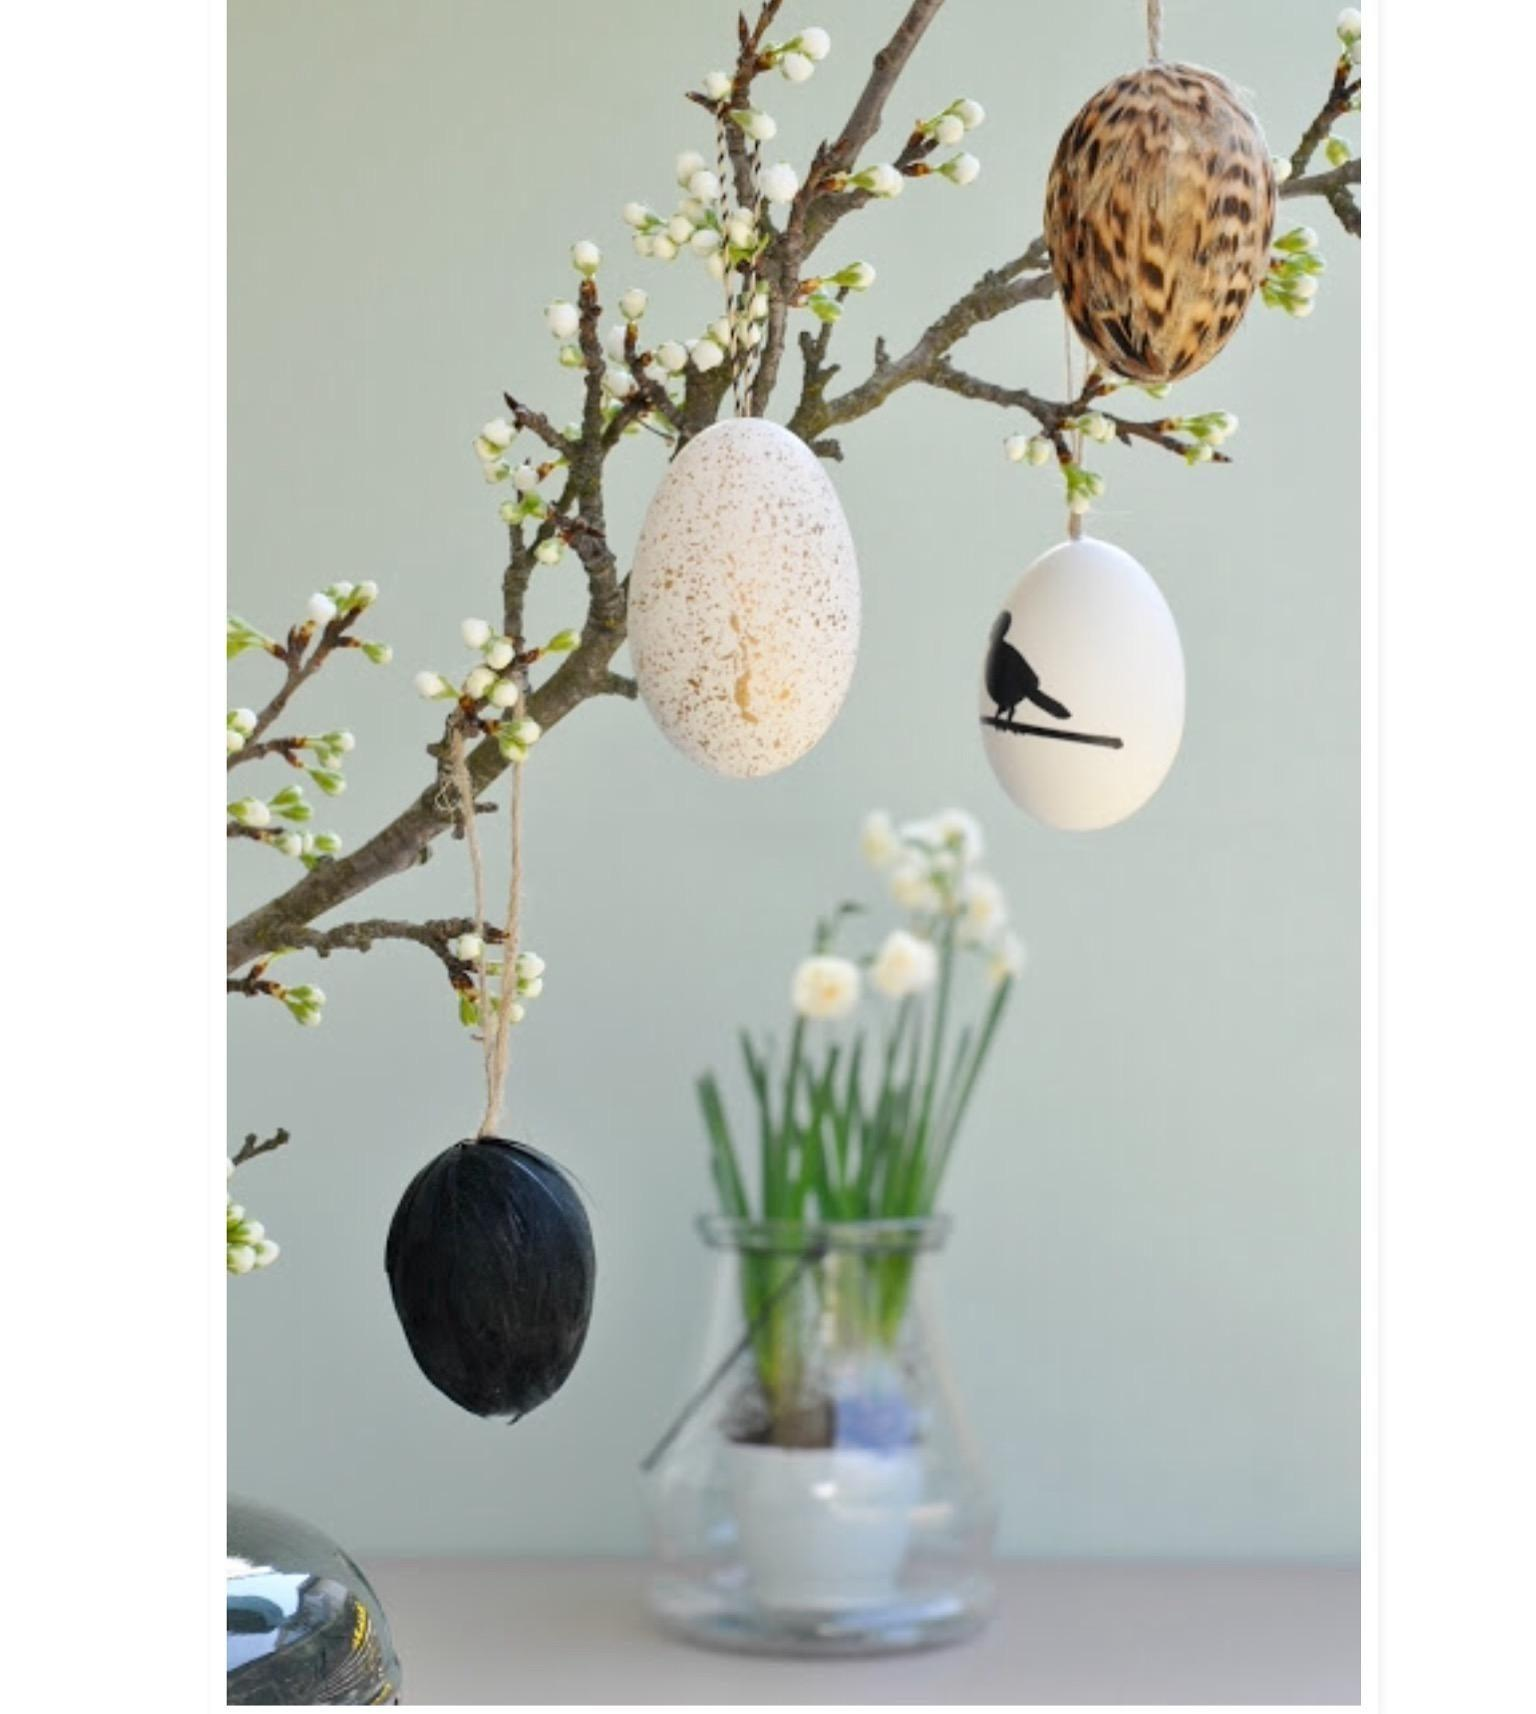 #osterstrauß #ostertisch #easter #easterdecor